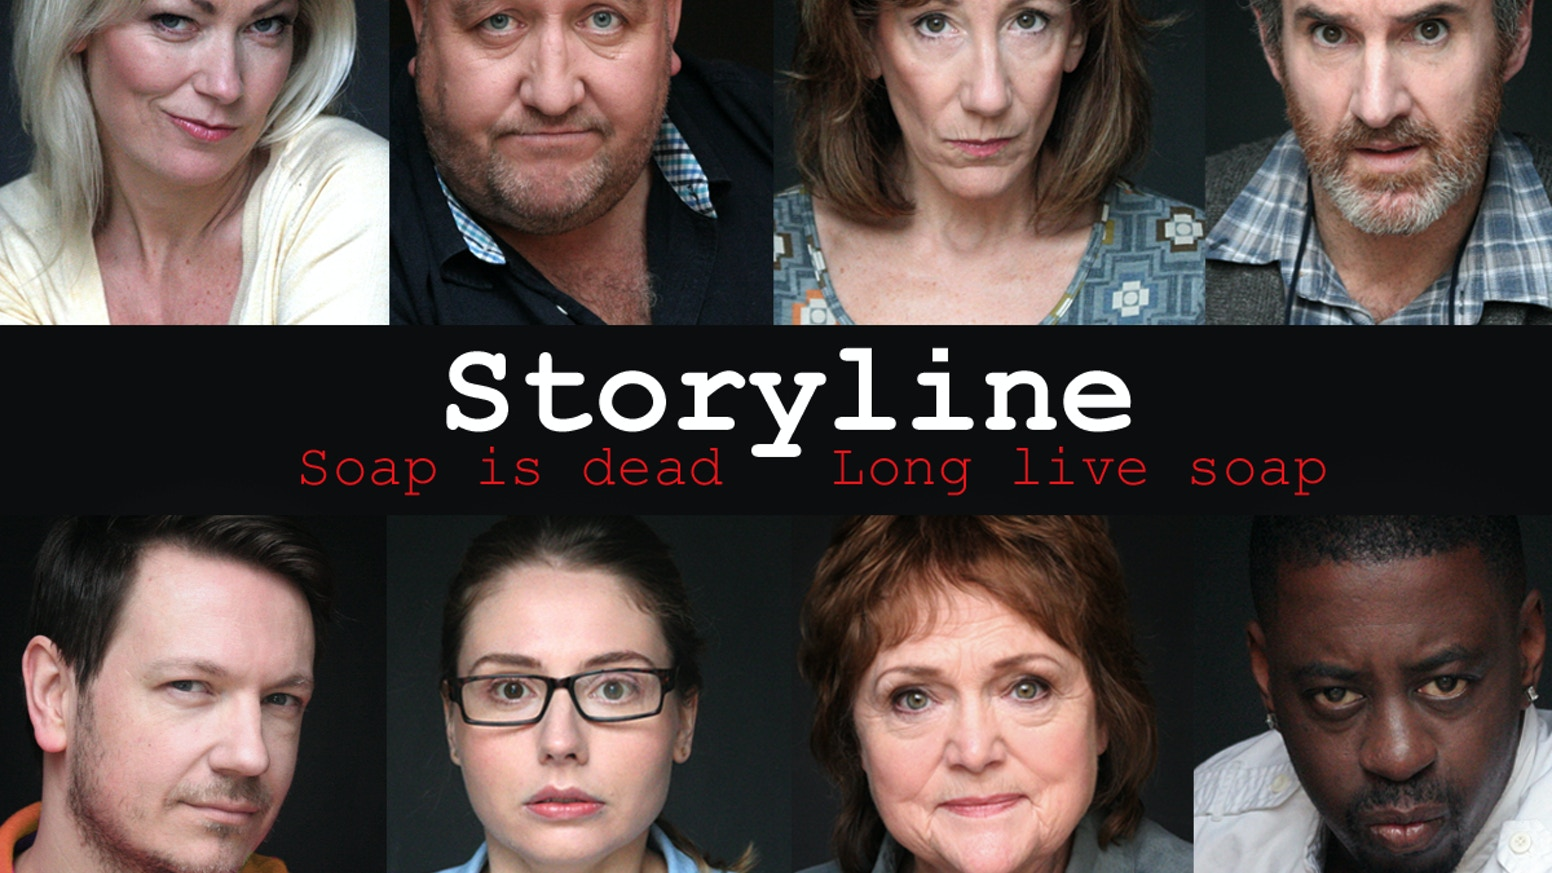 From the actors & writers who once brought you Eastenders, Coronation St, Emmerdale, Hollyoaks & more comes a dramatic new comedy...